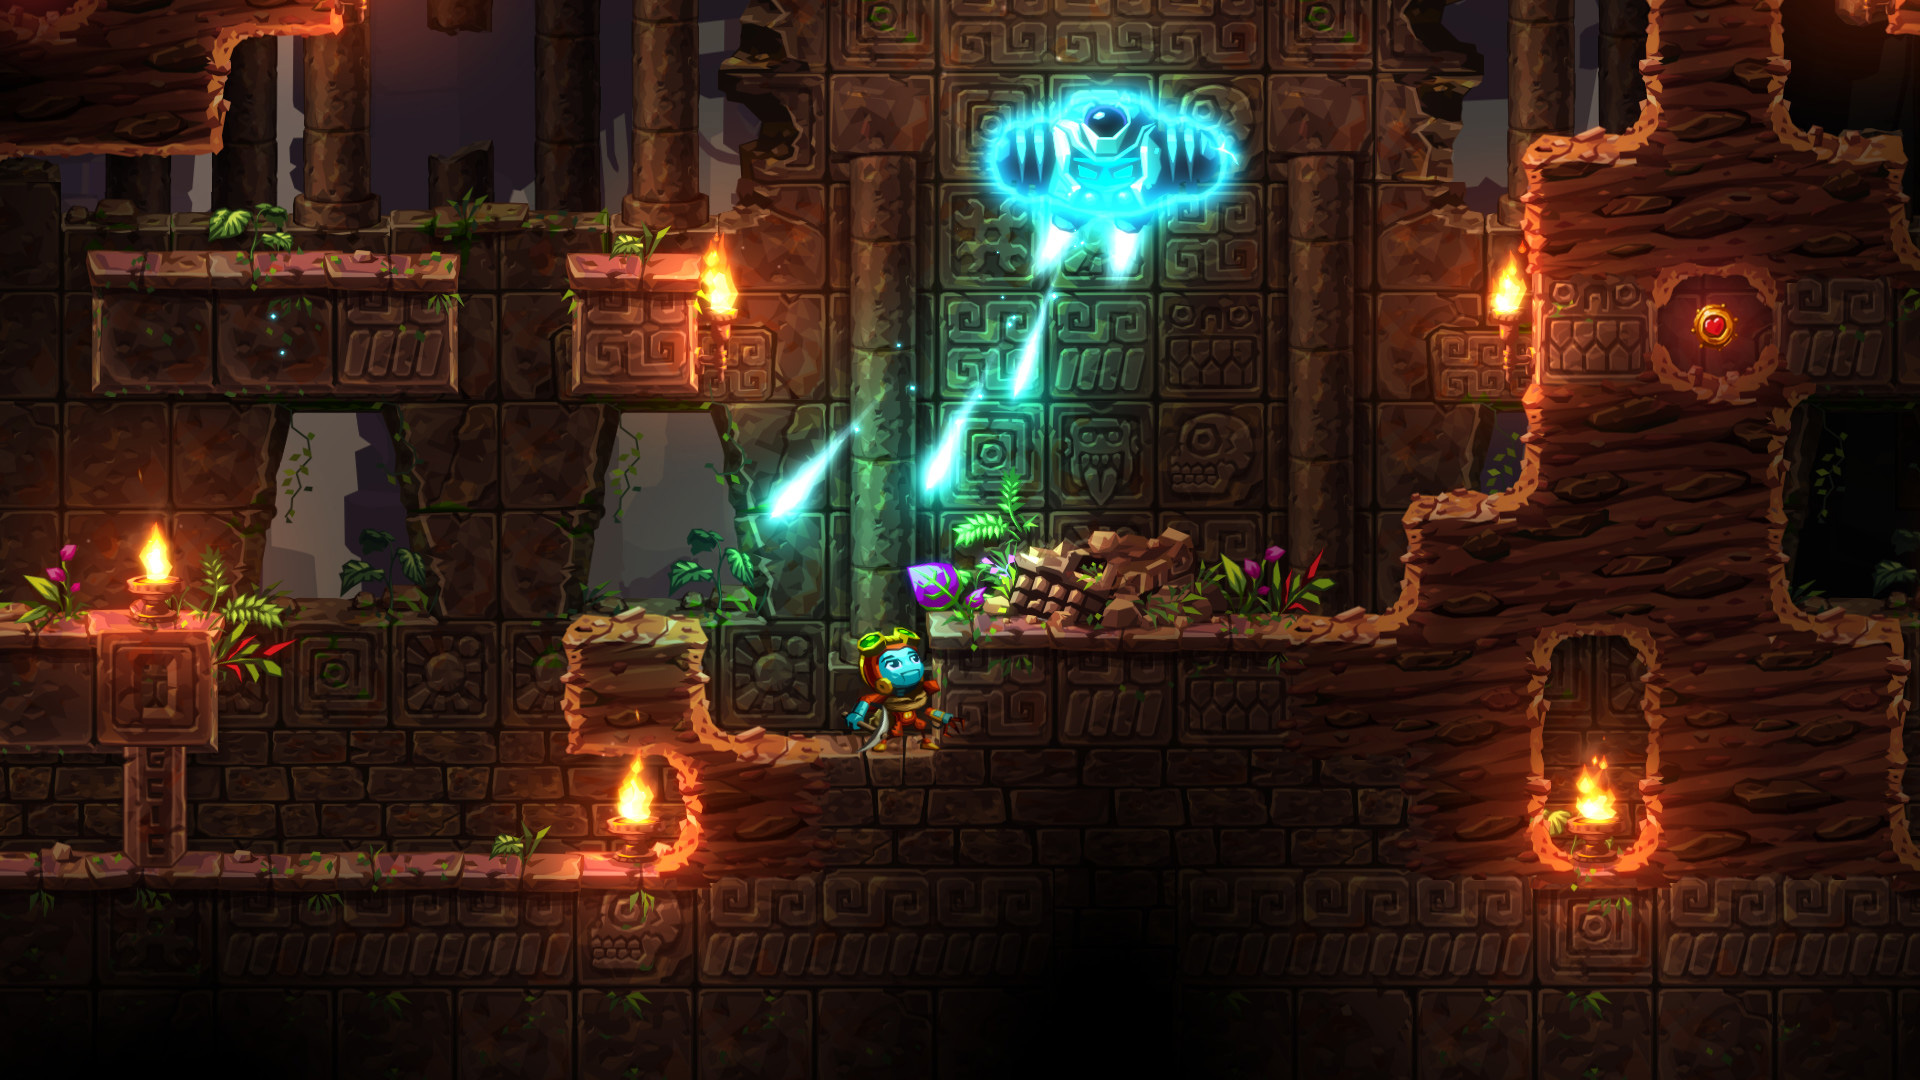 SteamWorld Dig 2 is coming to PC and PS4 right after Switch screenshot